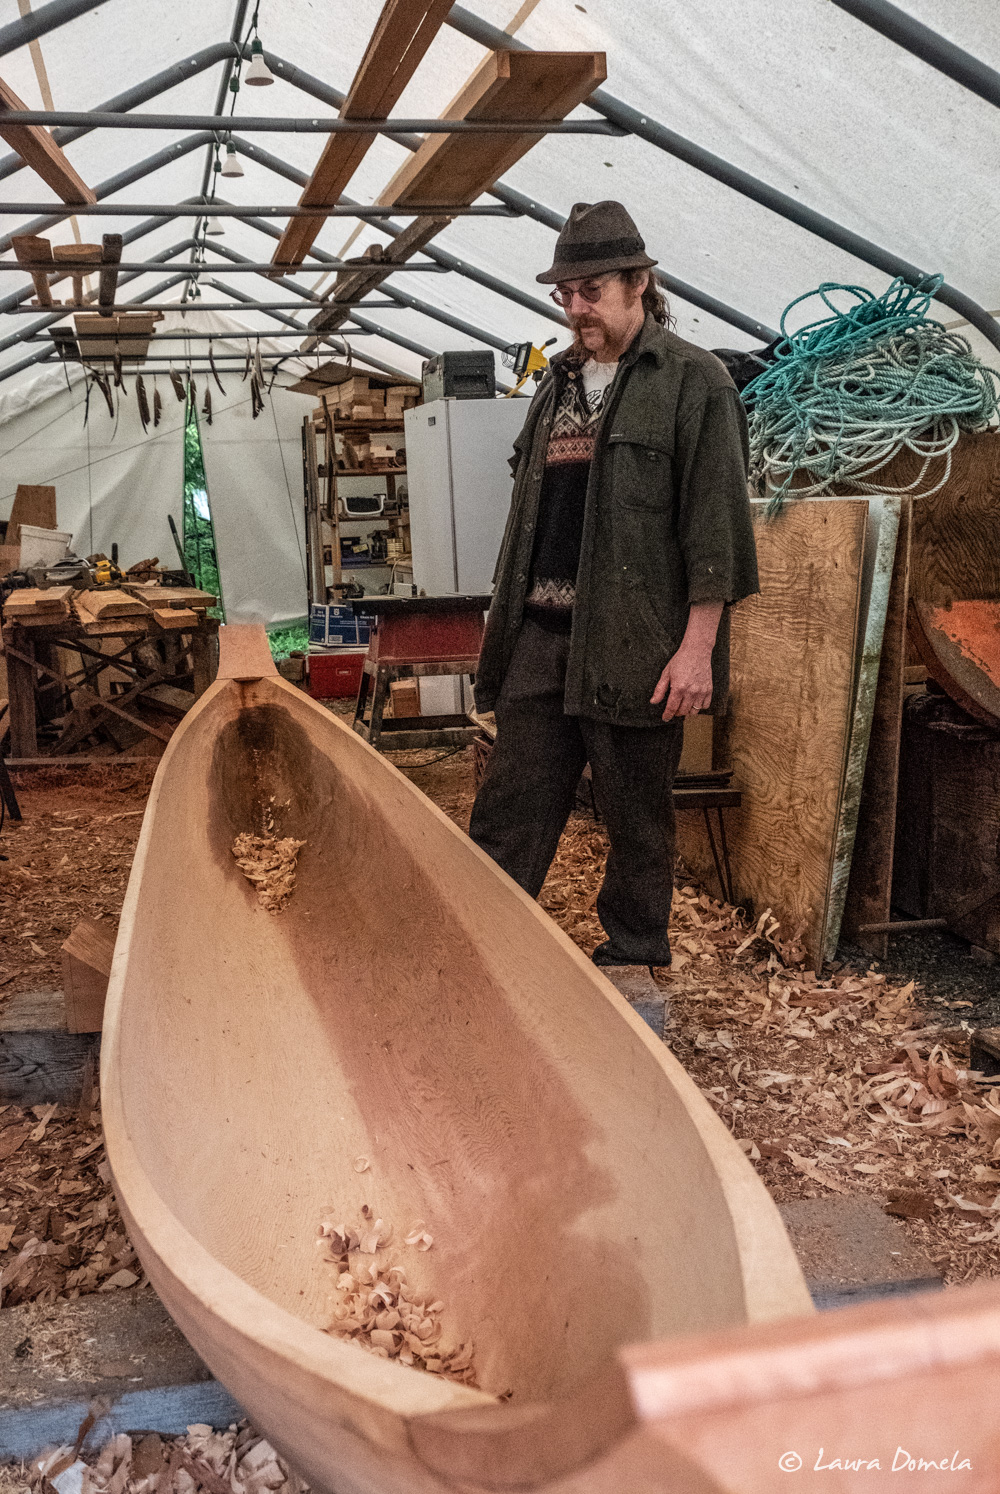 Carver Stormy showing us his 13' cedar canoe